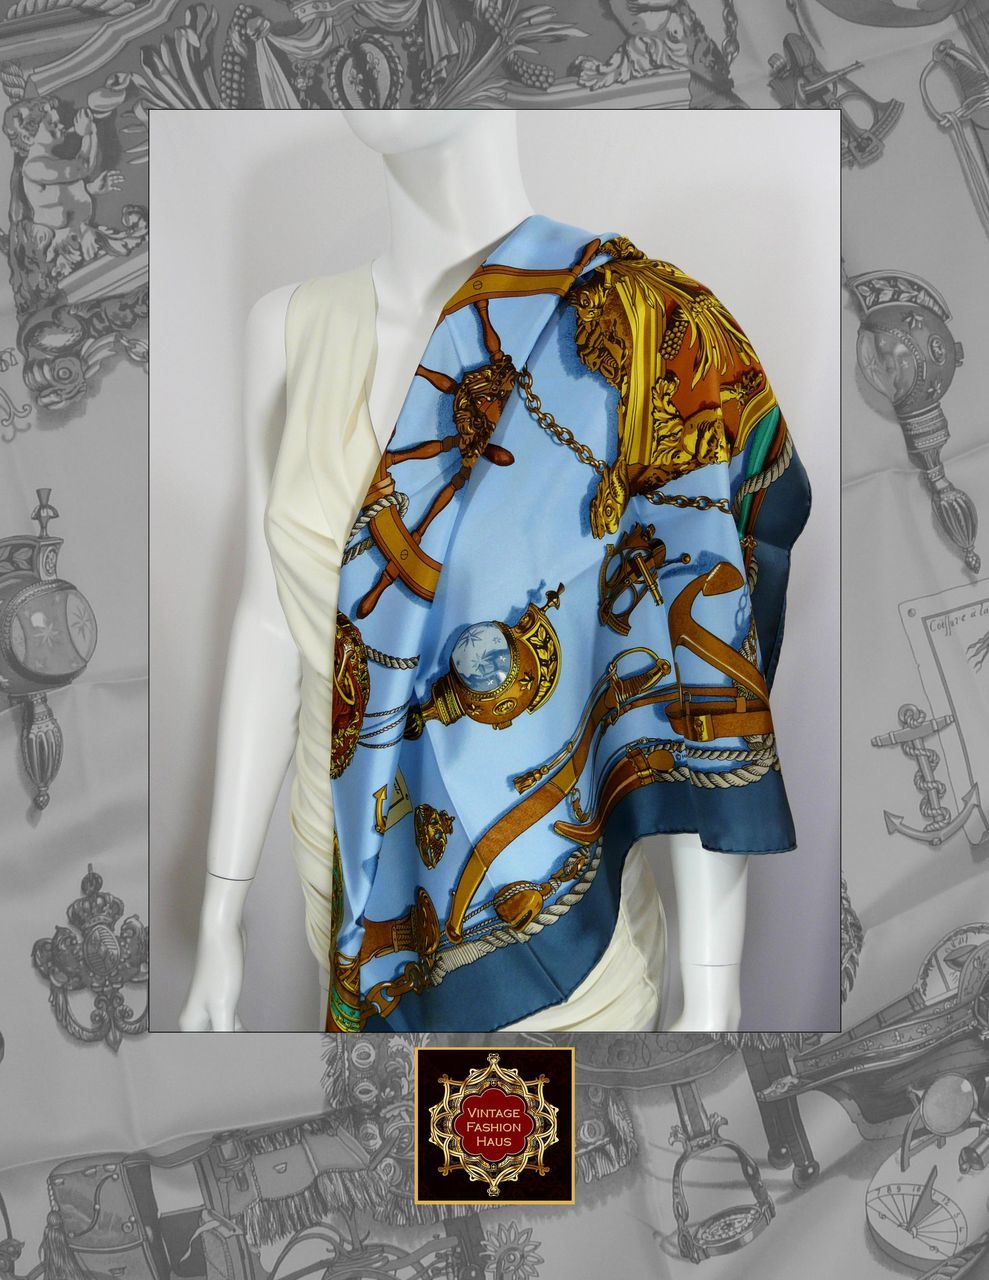 Authentic Vintage Hermes Silk Scarf  Carre MUSEE from  Authentic Vintage Hermes Scarves